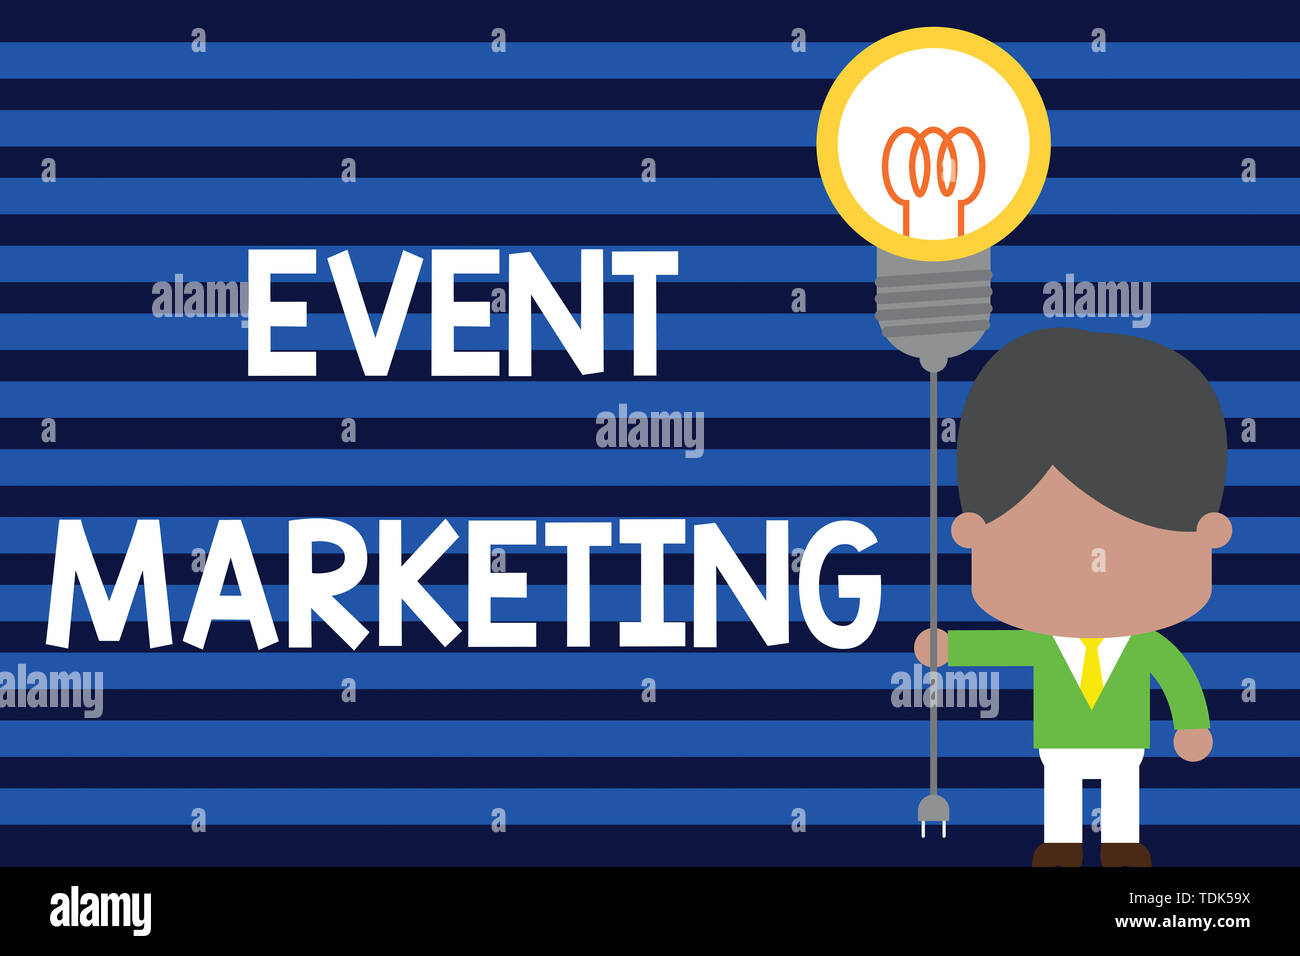 Writing note showing Event Marketing. Business concept for describes process of developing display to promote product Standing man tie holding plug so - Stock Image